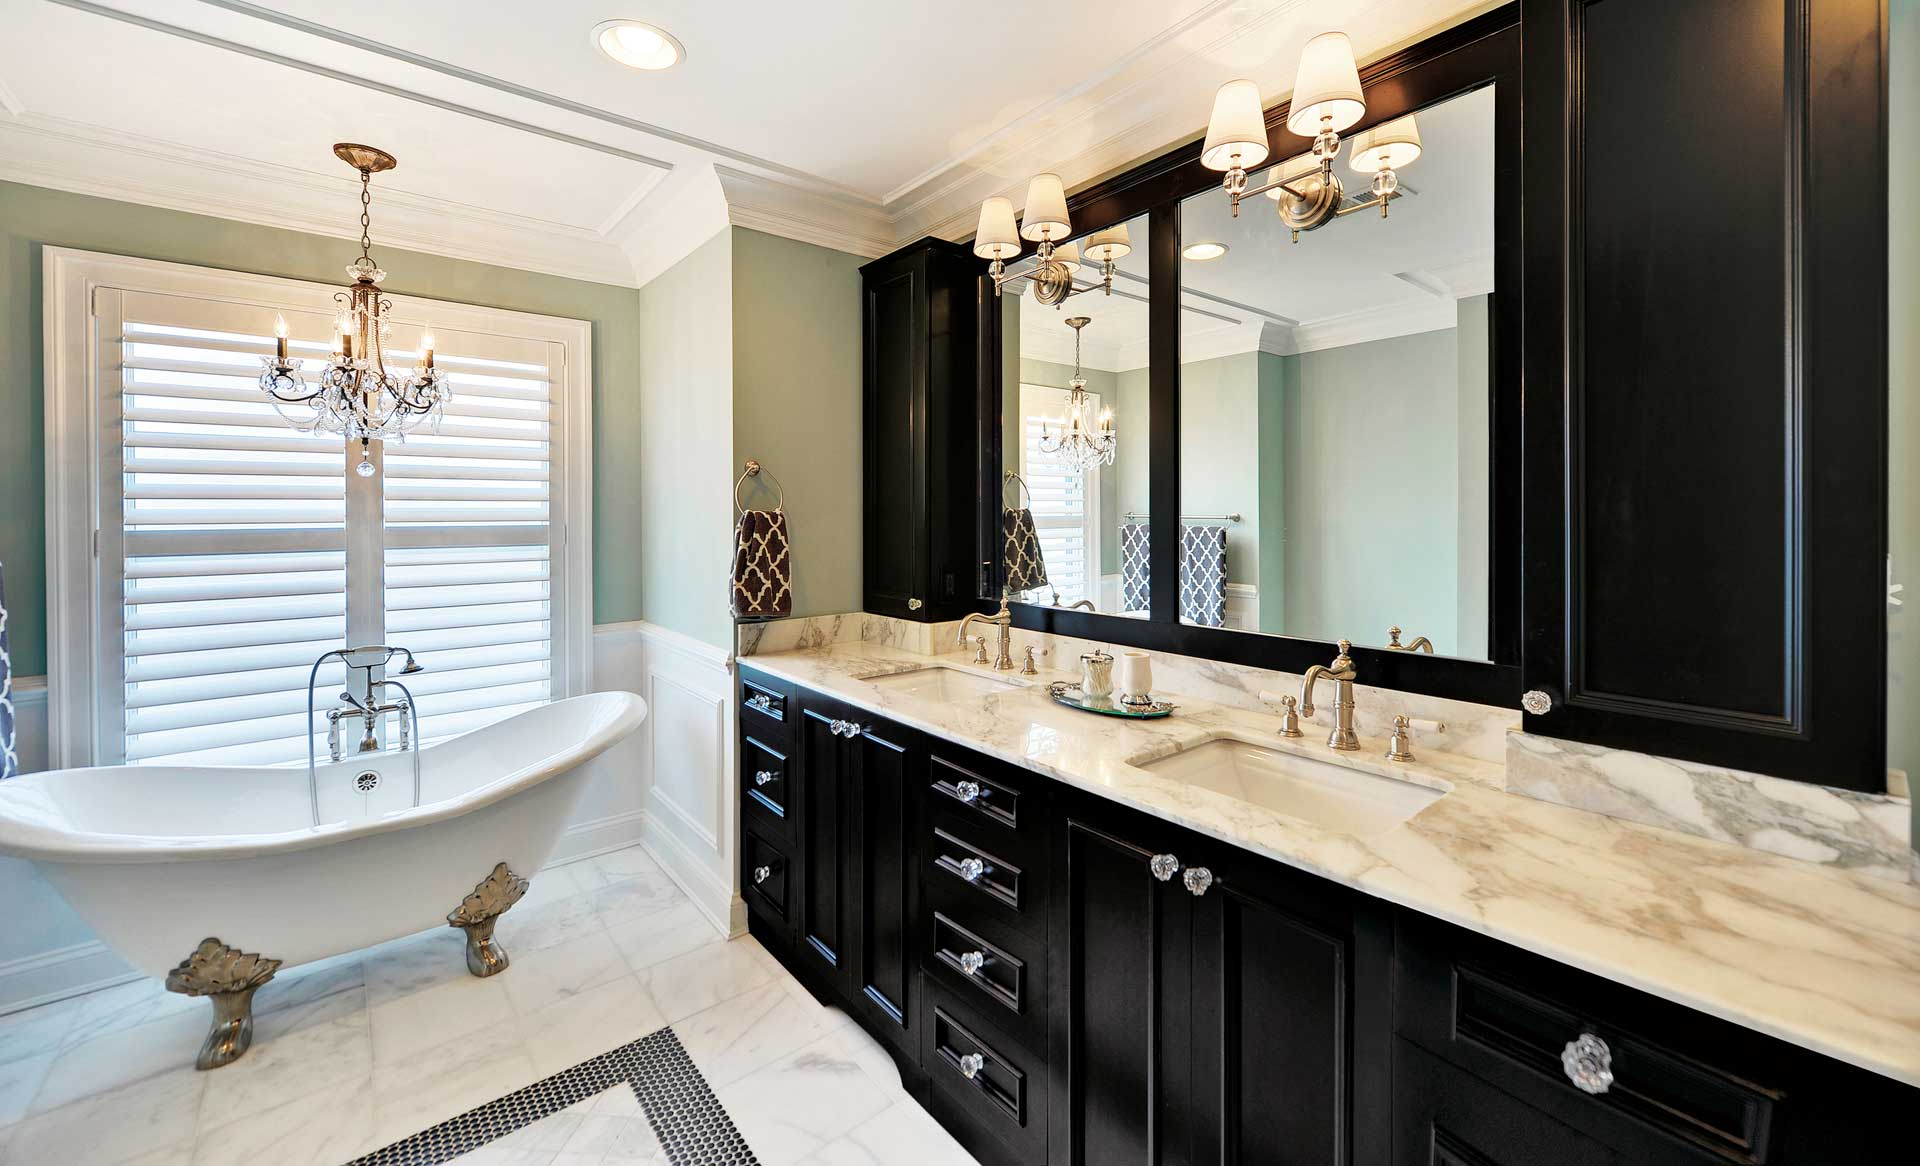 This stunning full access frameless Melrose Maple, Onyx (black) painted two sink bathroom vanity is designed with semi-custom Aspire cabinetry.